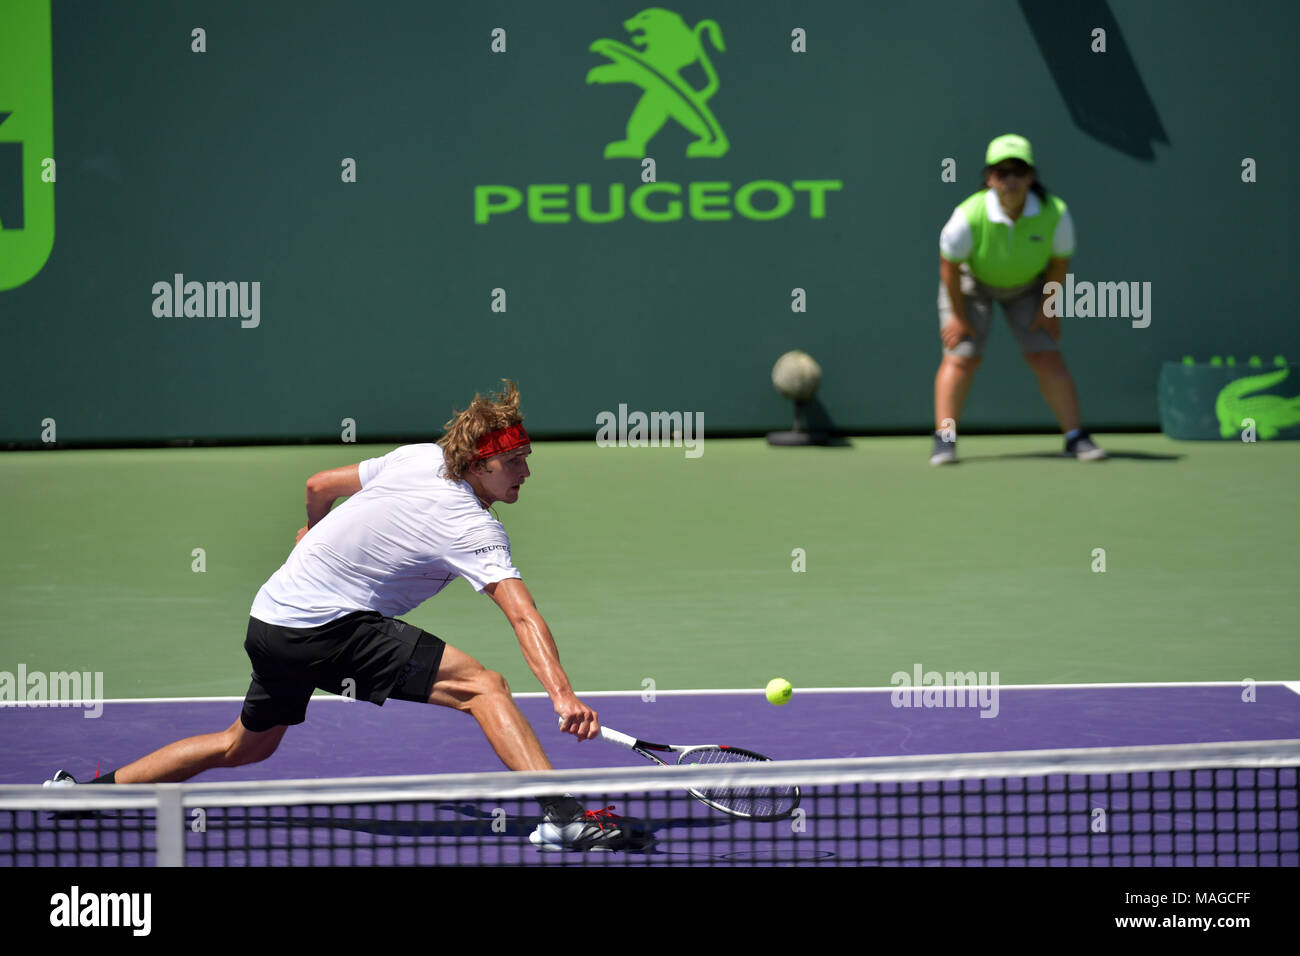 KEY BISCAYNE, FL - APRIL 01: Alexander Zverev breaks his racket in frustration and throws it dangerously into the crowd. John Isner (USA) defeats Alexander Zverev (GER) 67(4) 64 64 in the Mens Final at the Miami Open held at the Crandon Park Tennis Center on April 1, 2018 in Key Biscayne, Florida   People:  Alexander Zverev - Stock Image